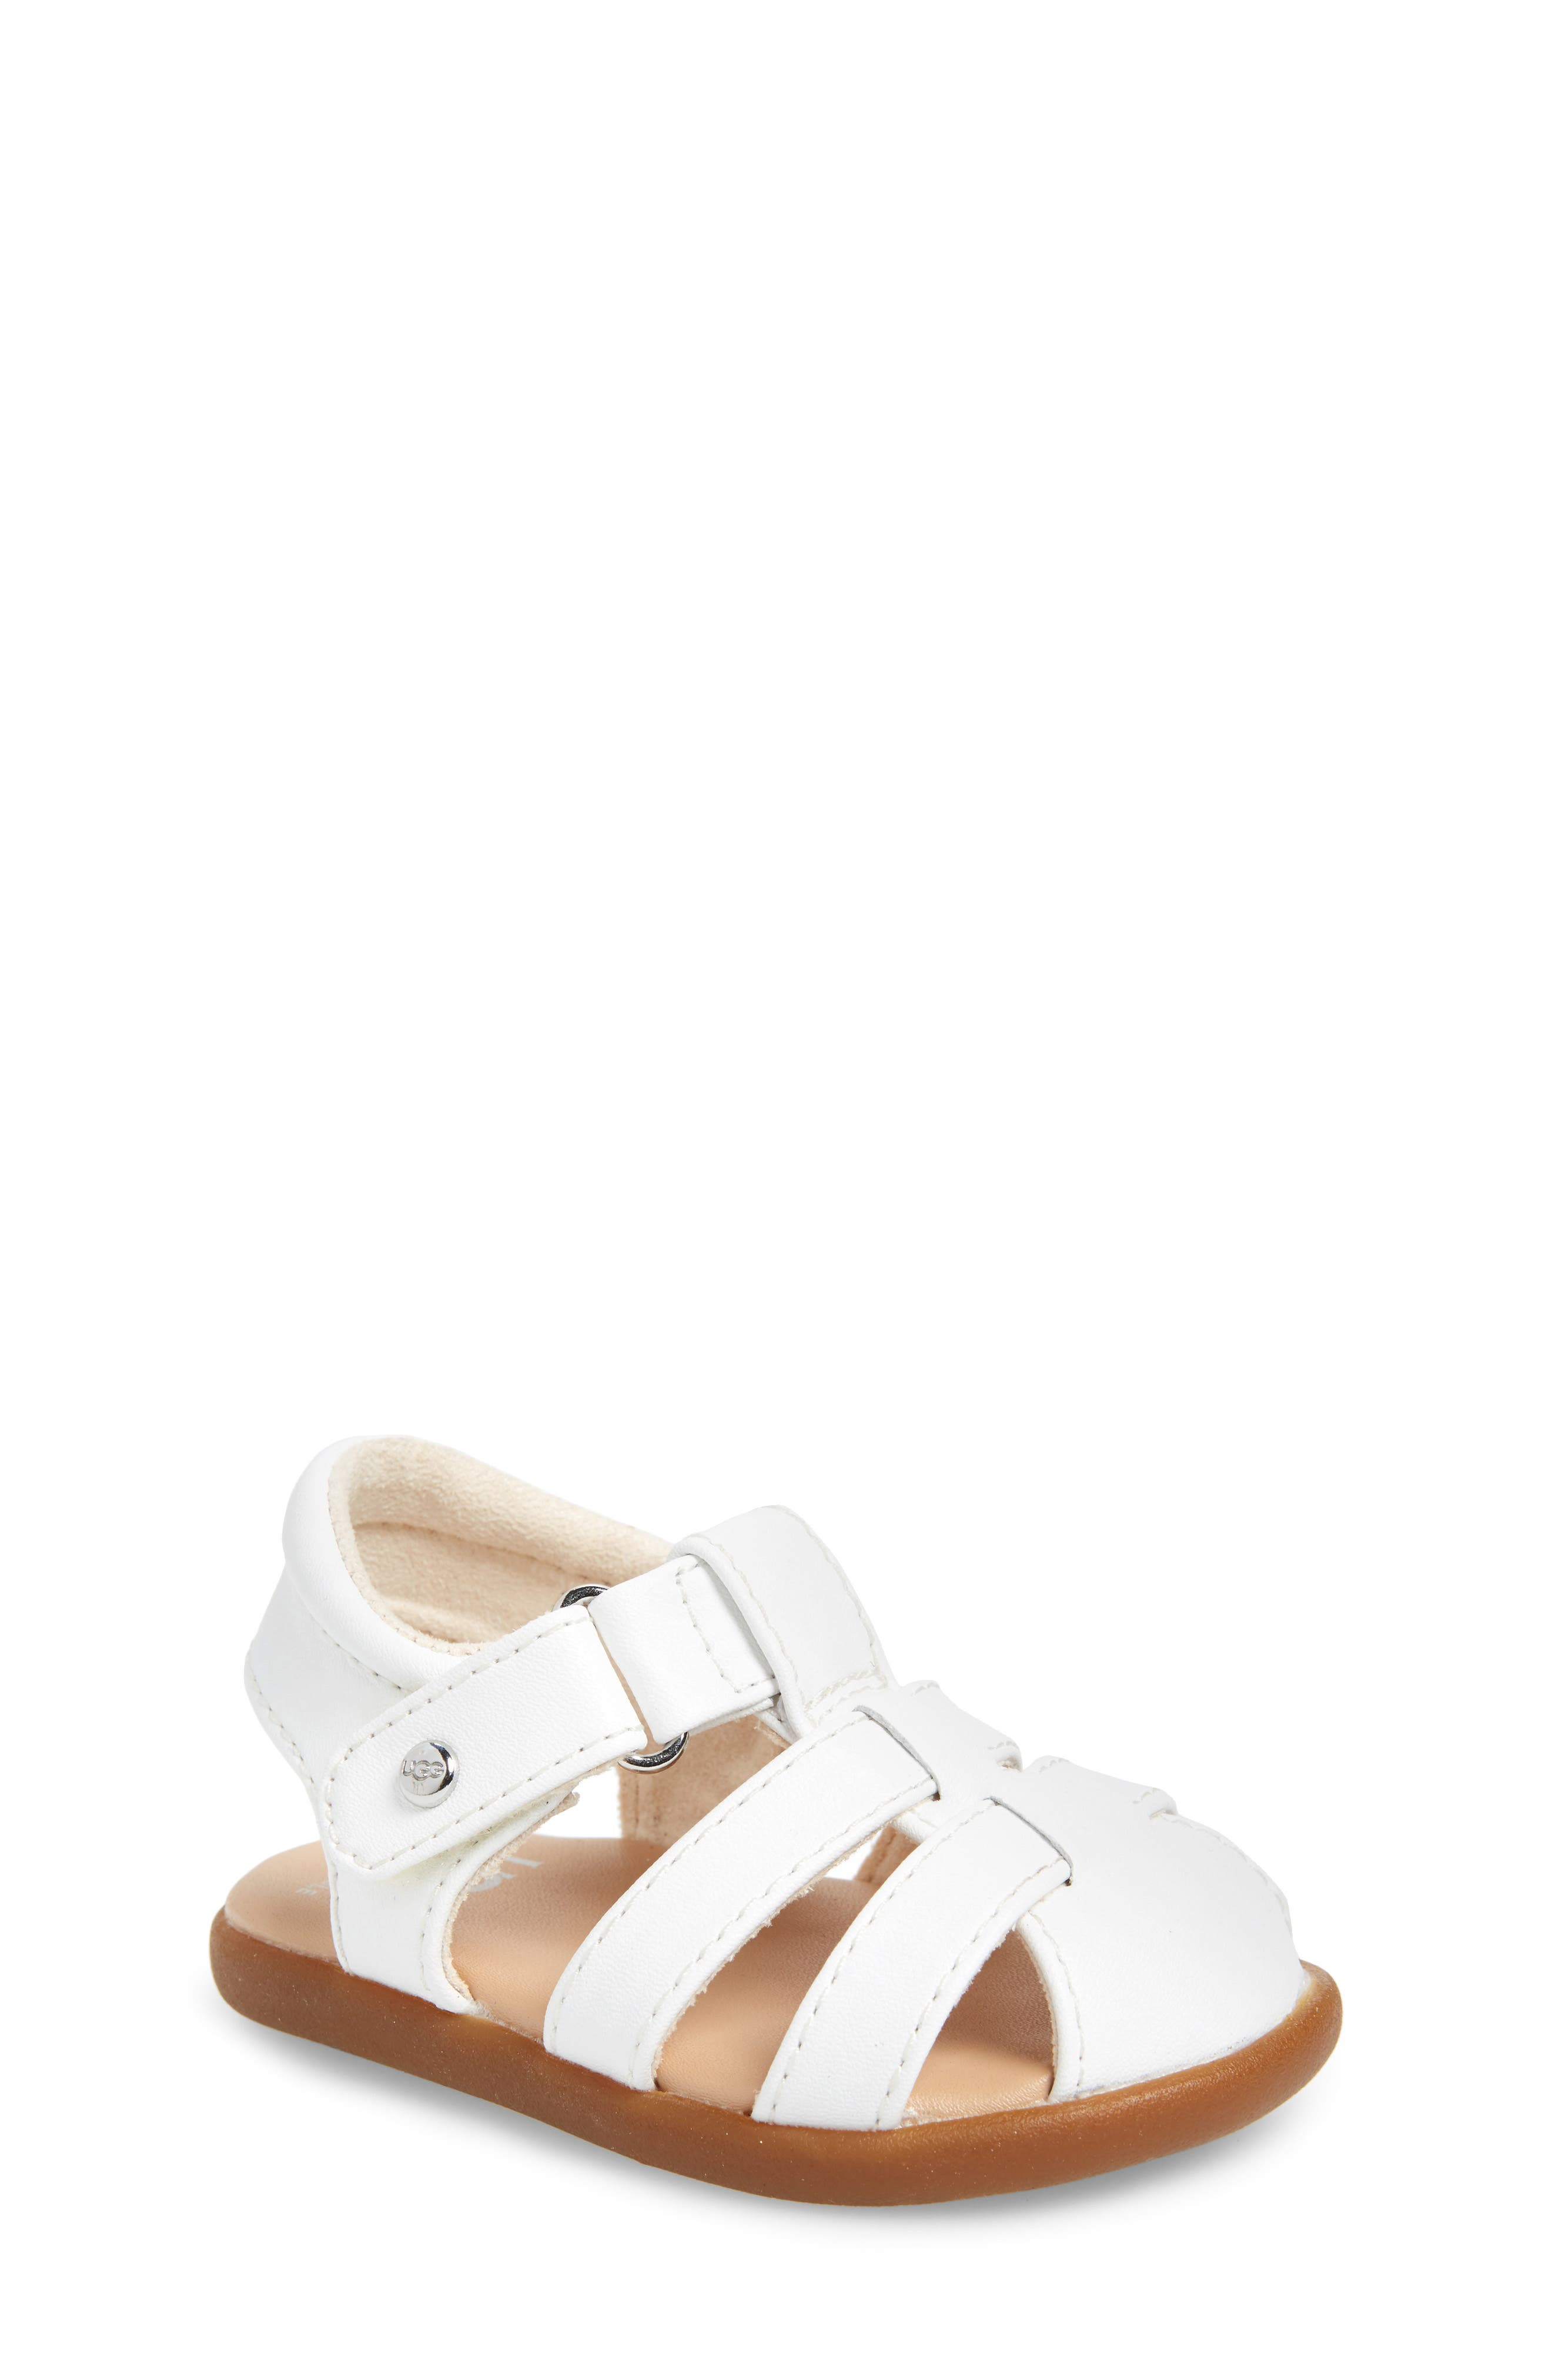 Kolding Fisherman Sandal,                         Main,                         color, WHITE